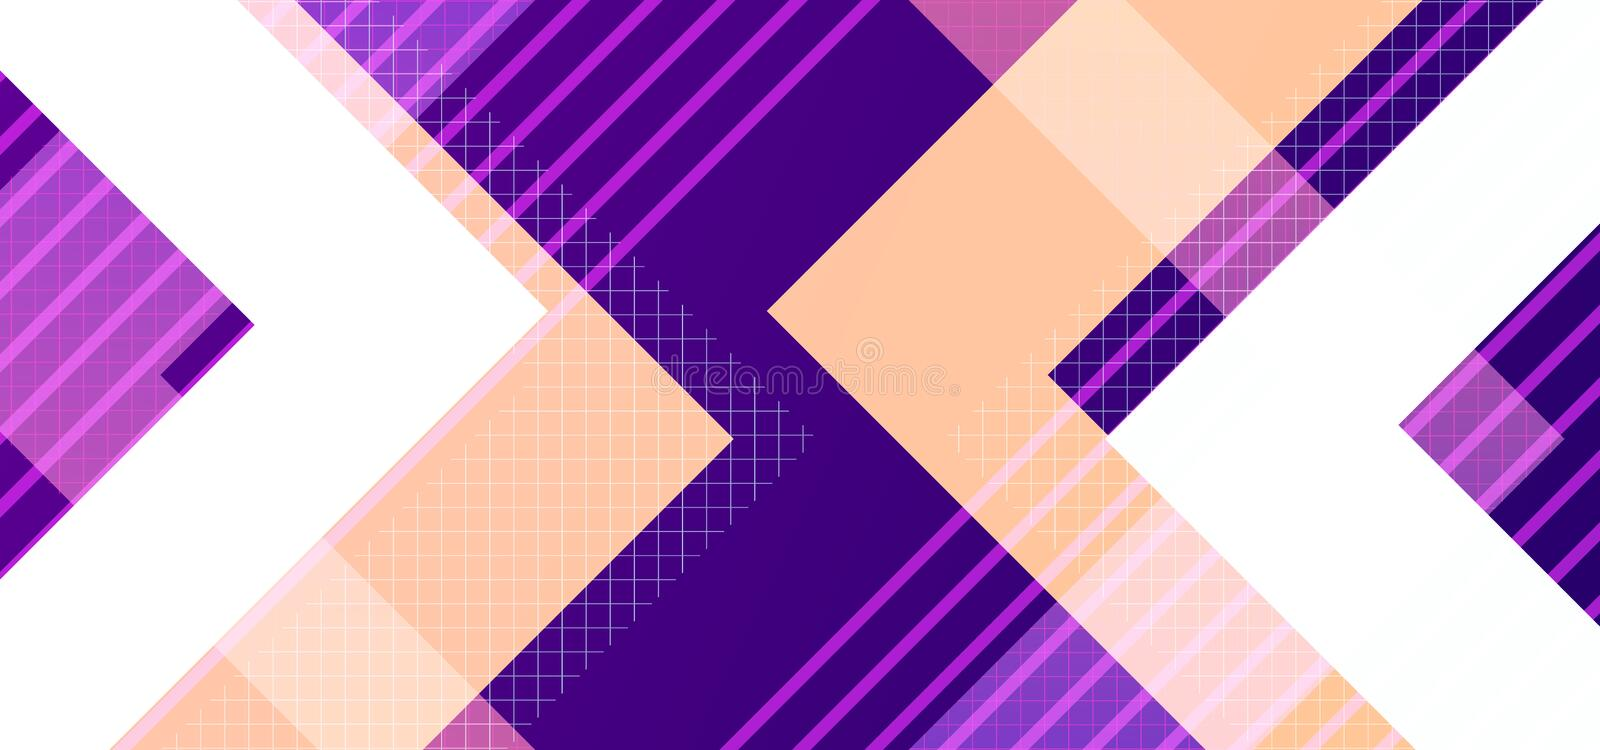 Hipster modern geometric abstract background. Purple, yellow, and pink stripes, textured background. Business template for a vector illustration